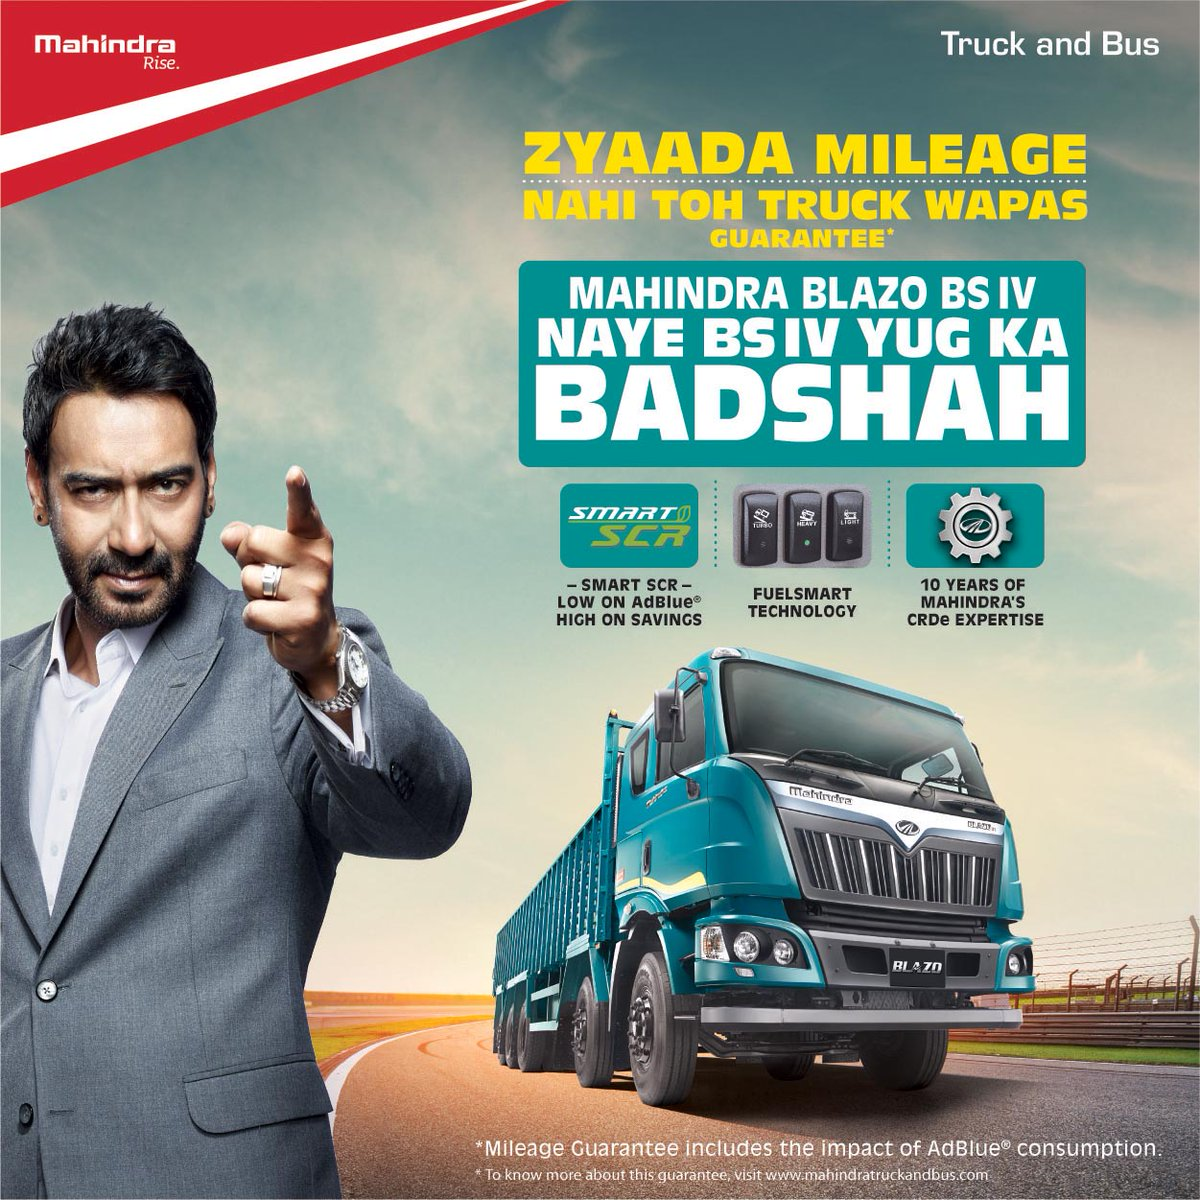 Mahindra #BLAZO maintains its #truck back guarantee even under #BSIV! Easily the Badshah of BS IV? Miss #call 1800 315 7799   @anandmahindra<br>http://pic.twitter.com/l1rsRMiH6g